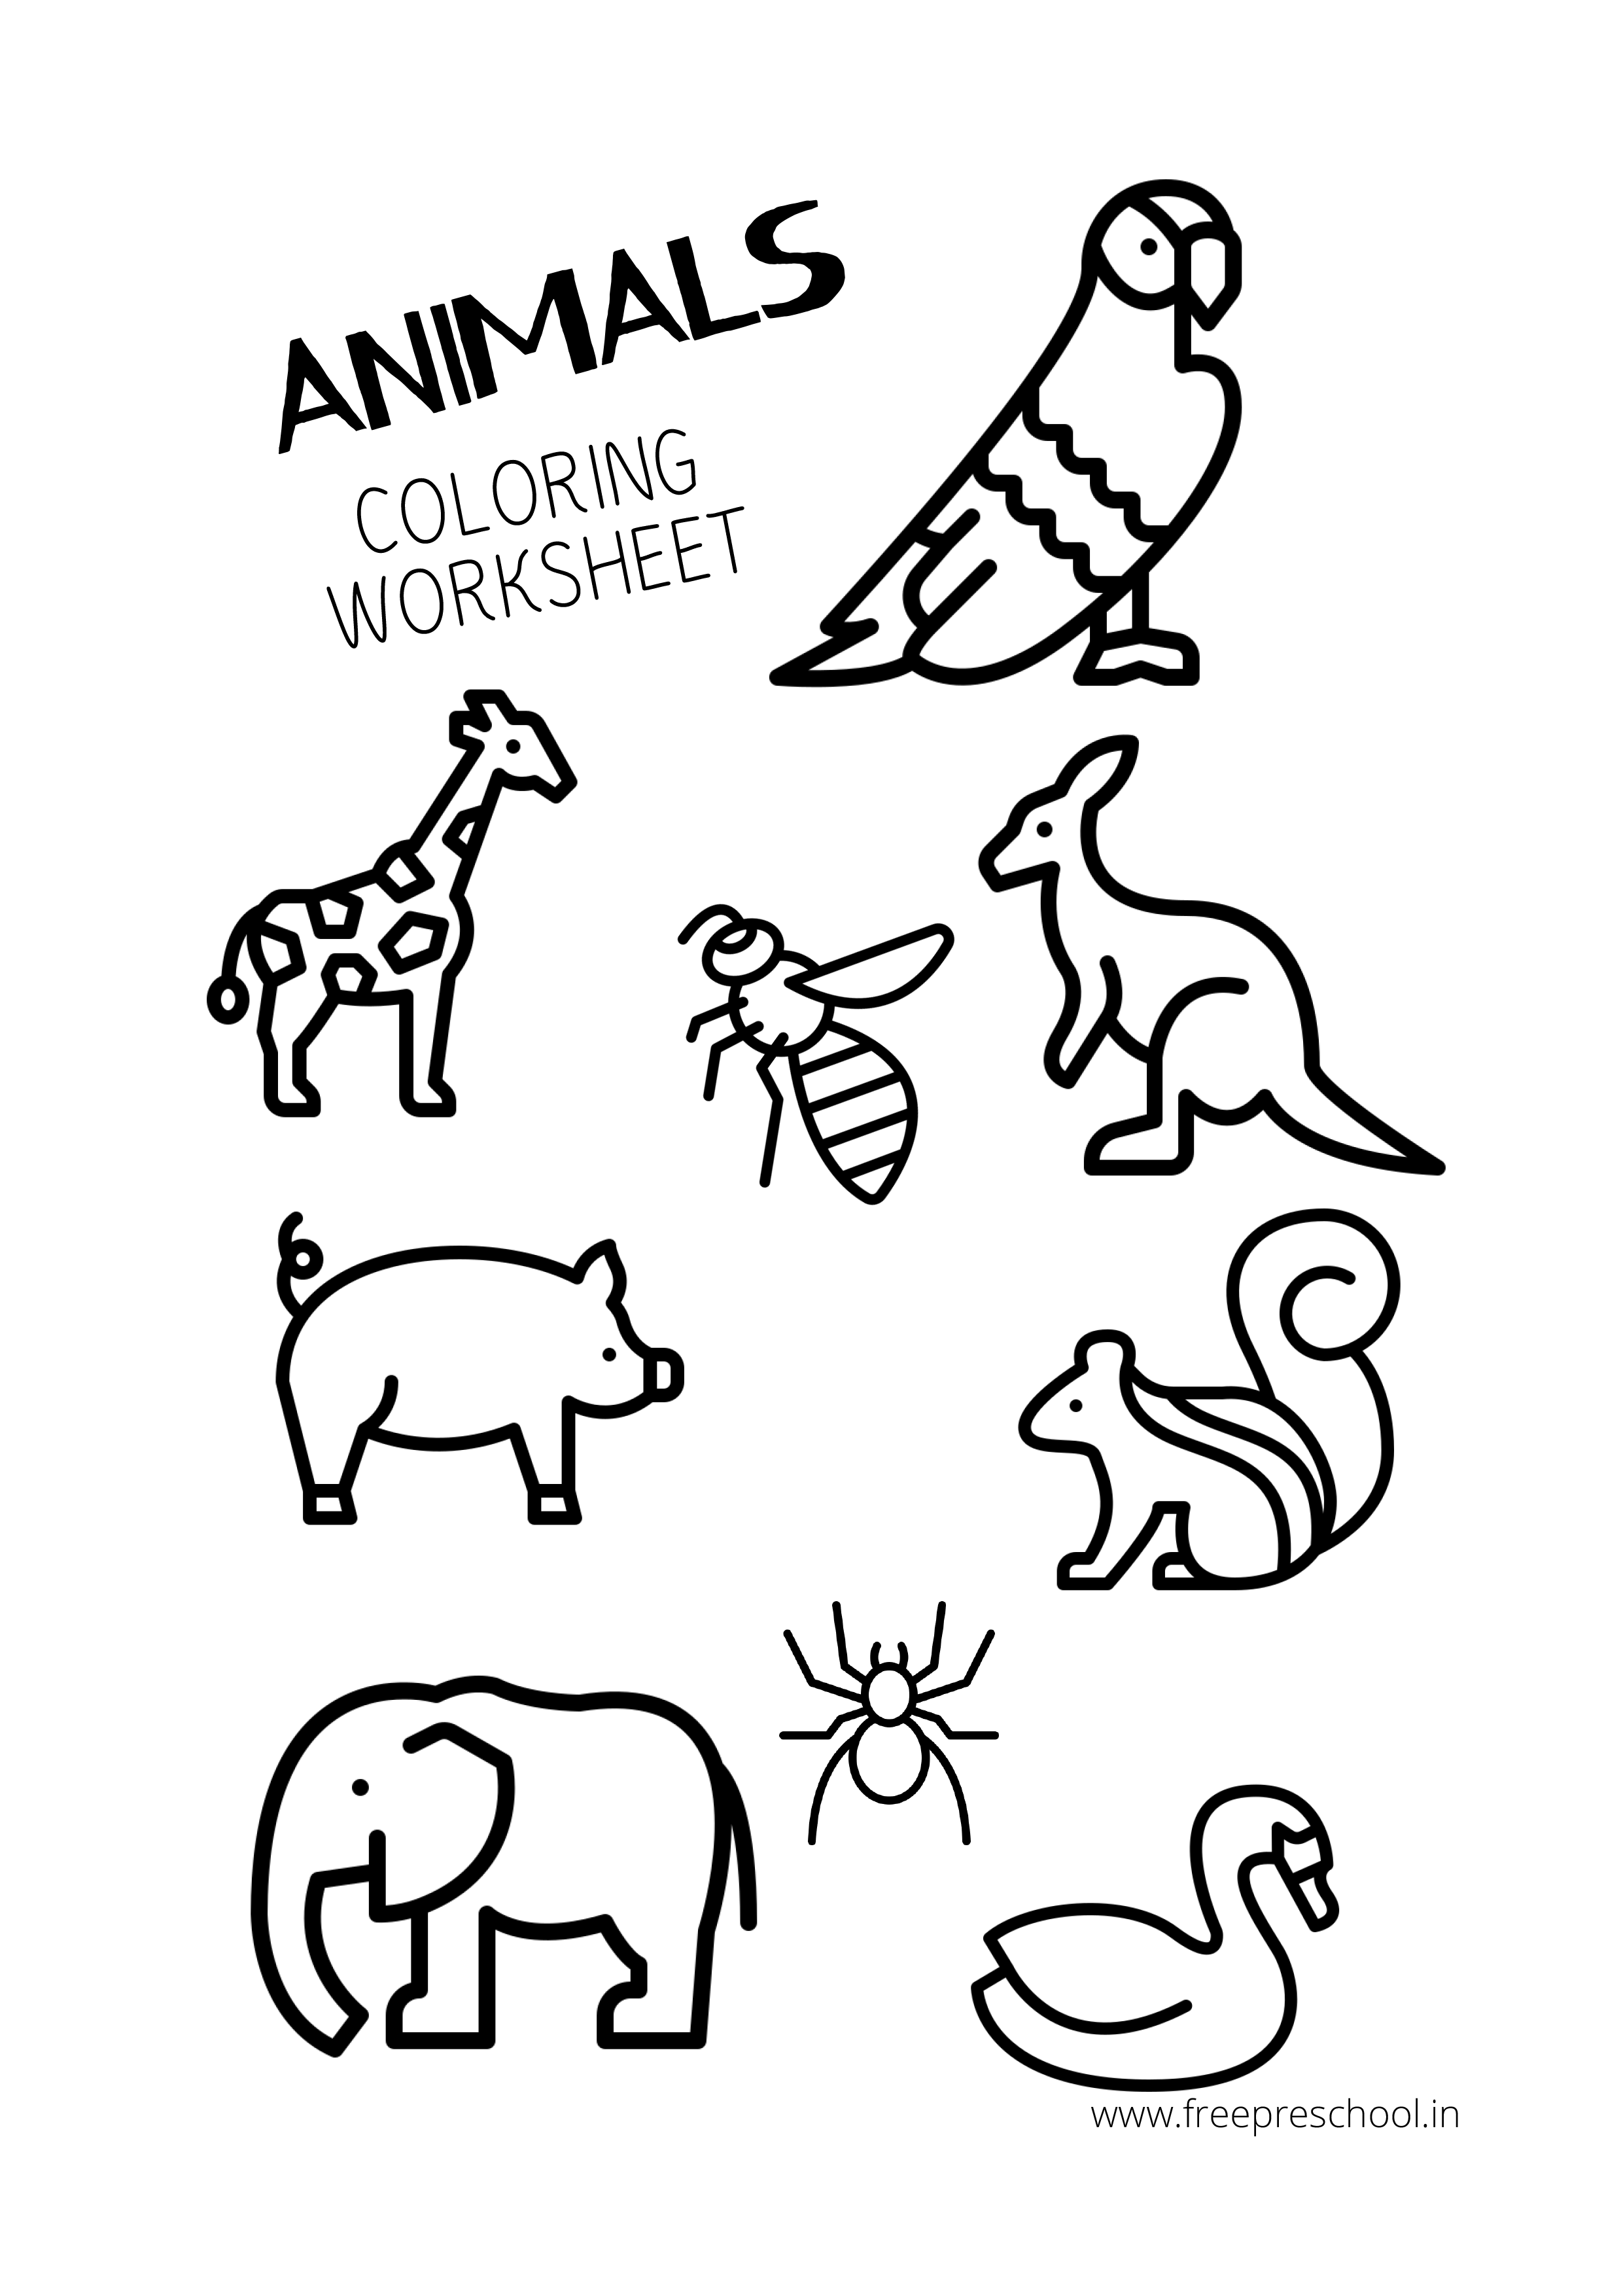 Animal Coloring Pages Free Downloads